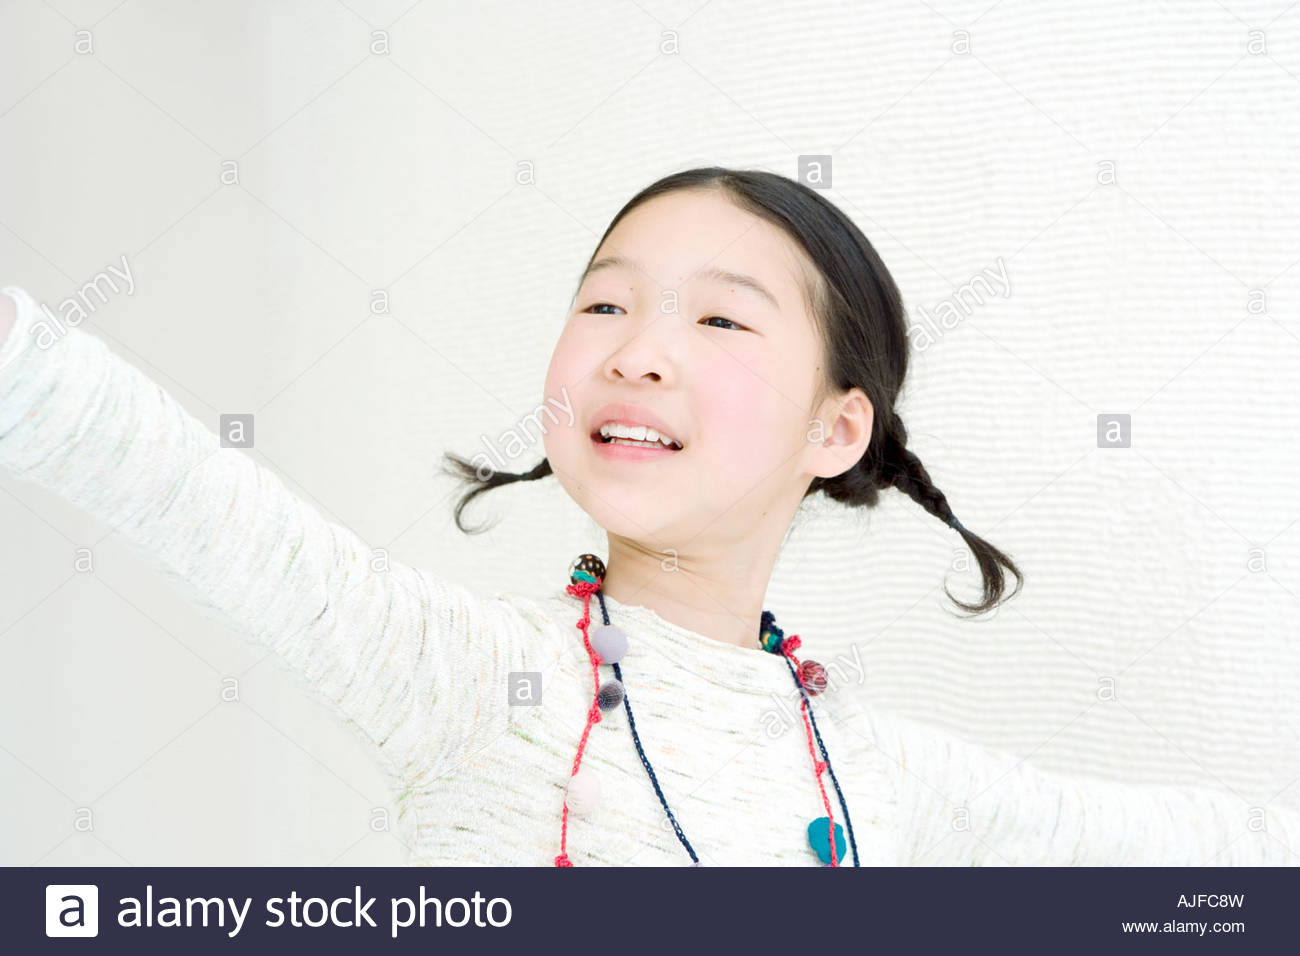 Girl with arms open - Stock Image